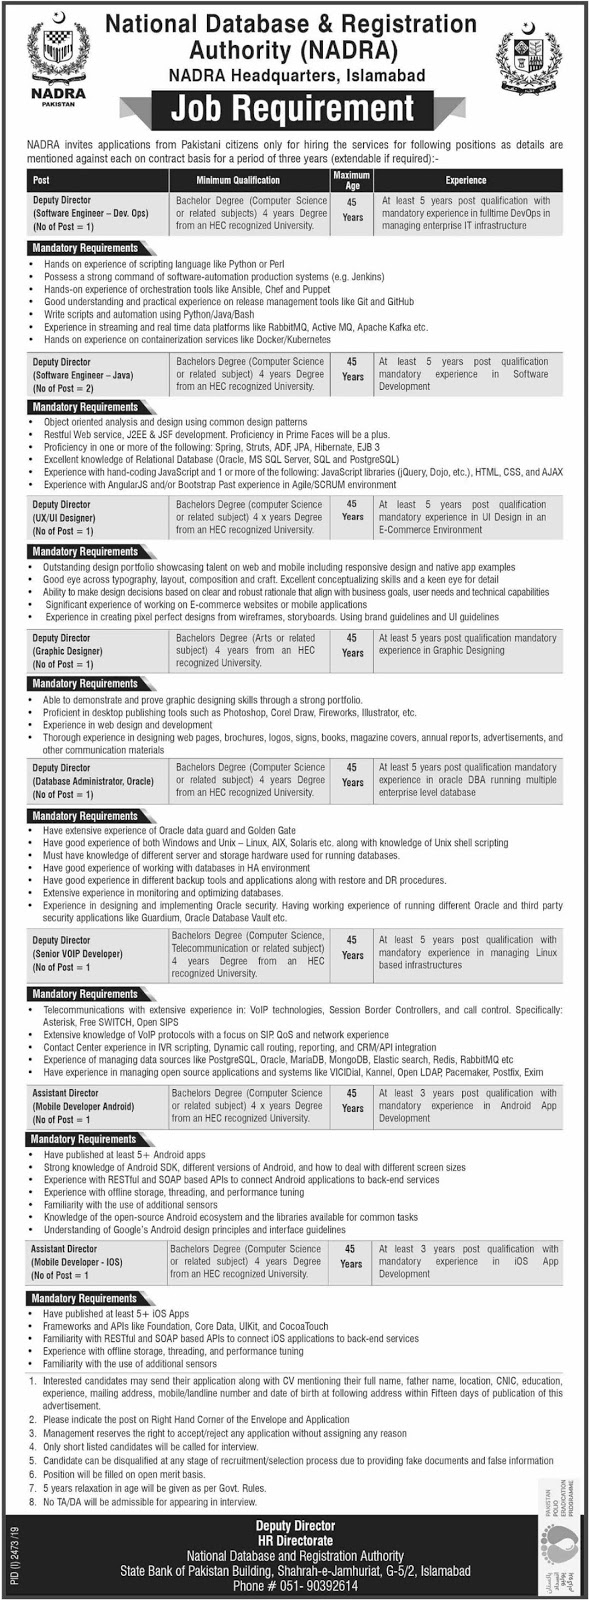 Nadra Headquarters Islamabad Jobs 2019 Pakistan Latest